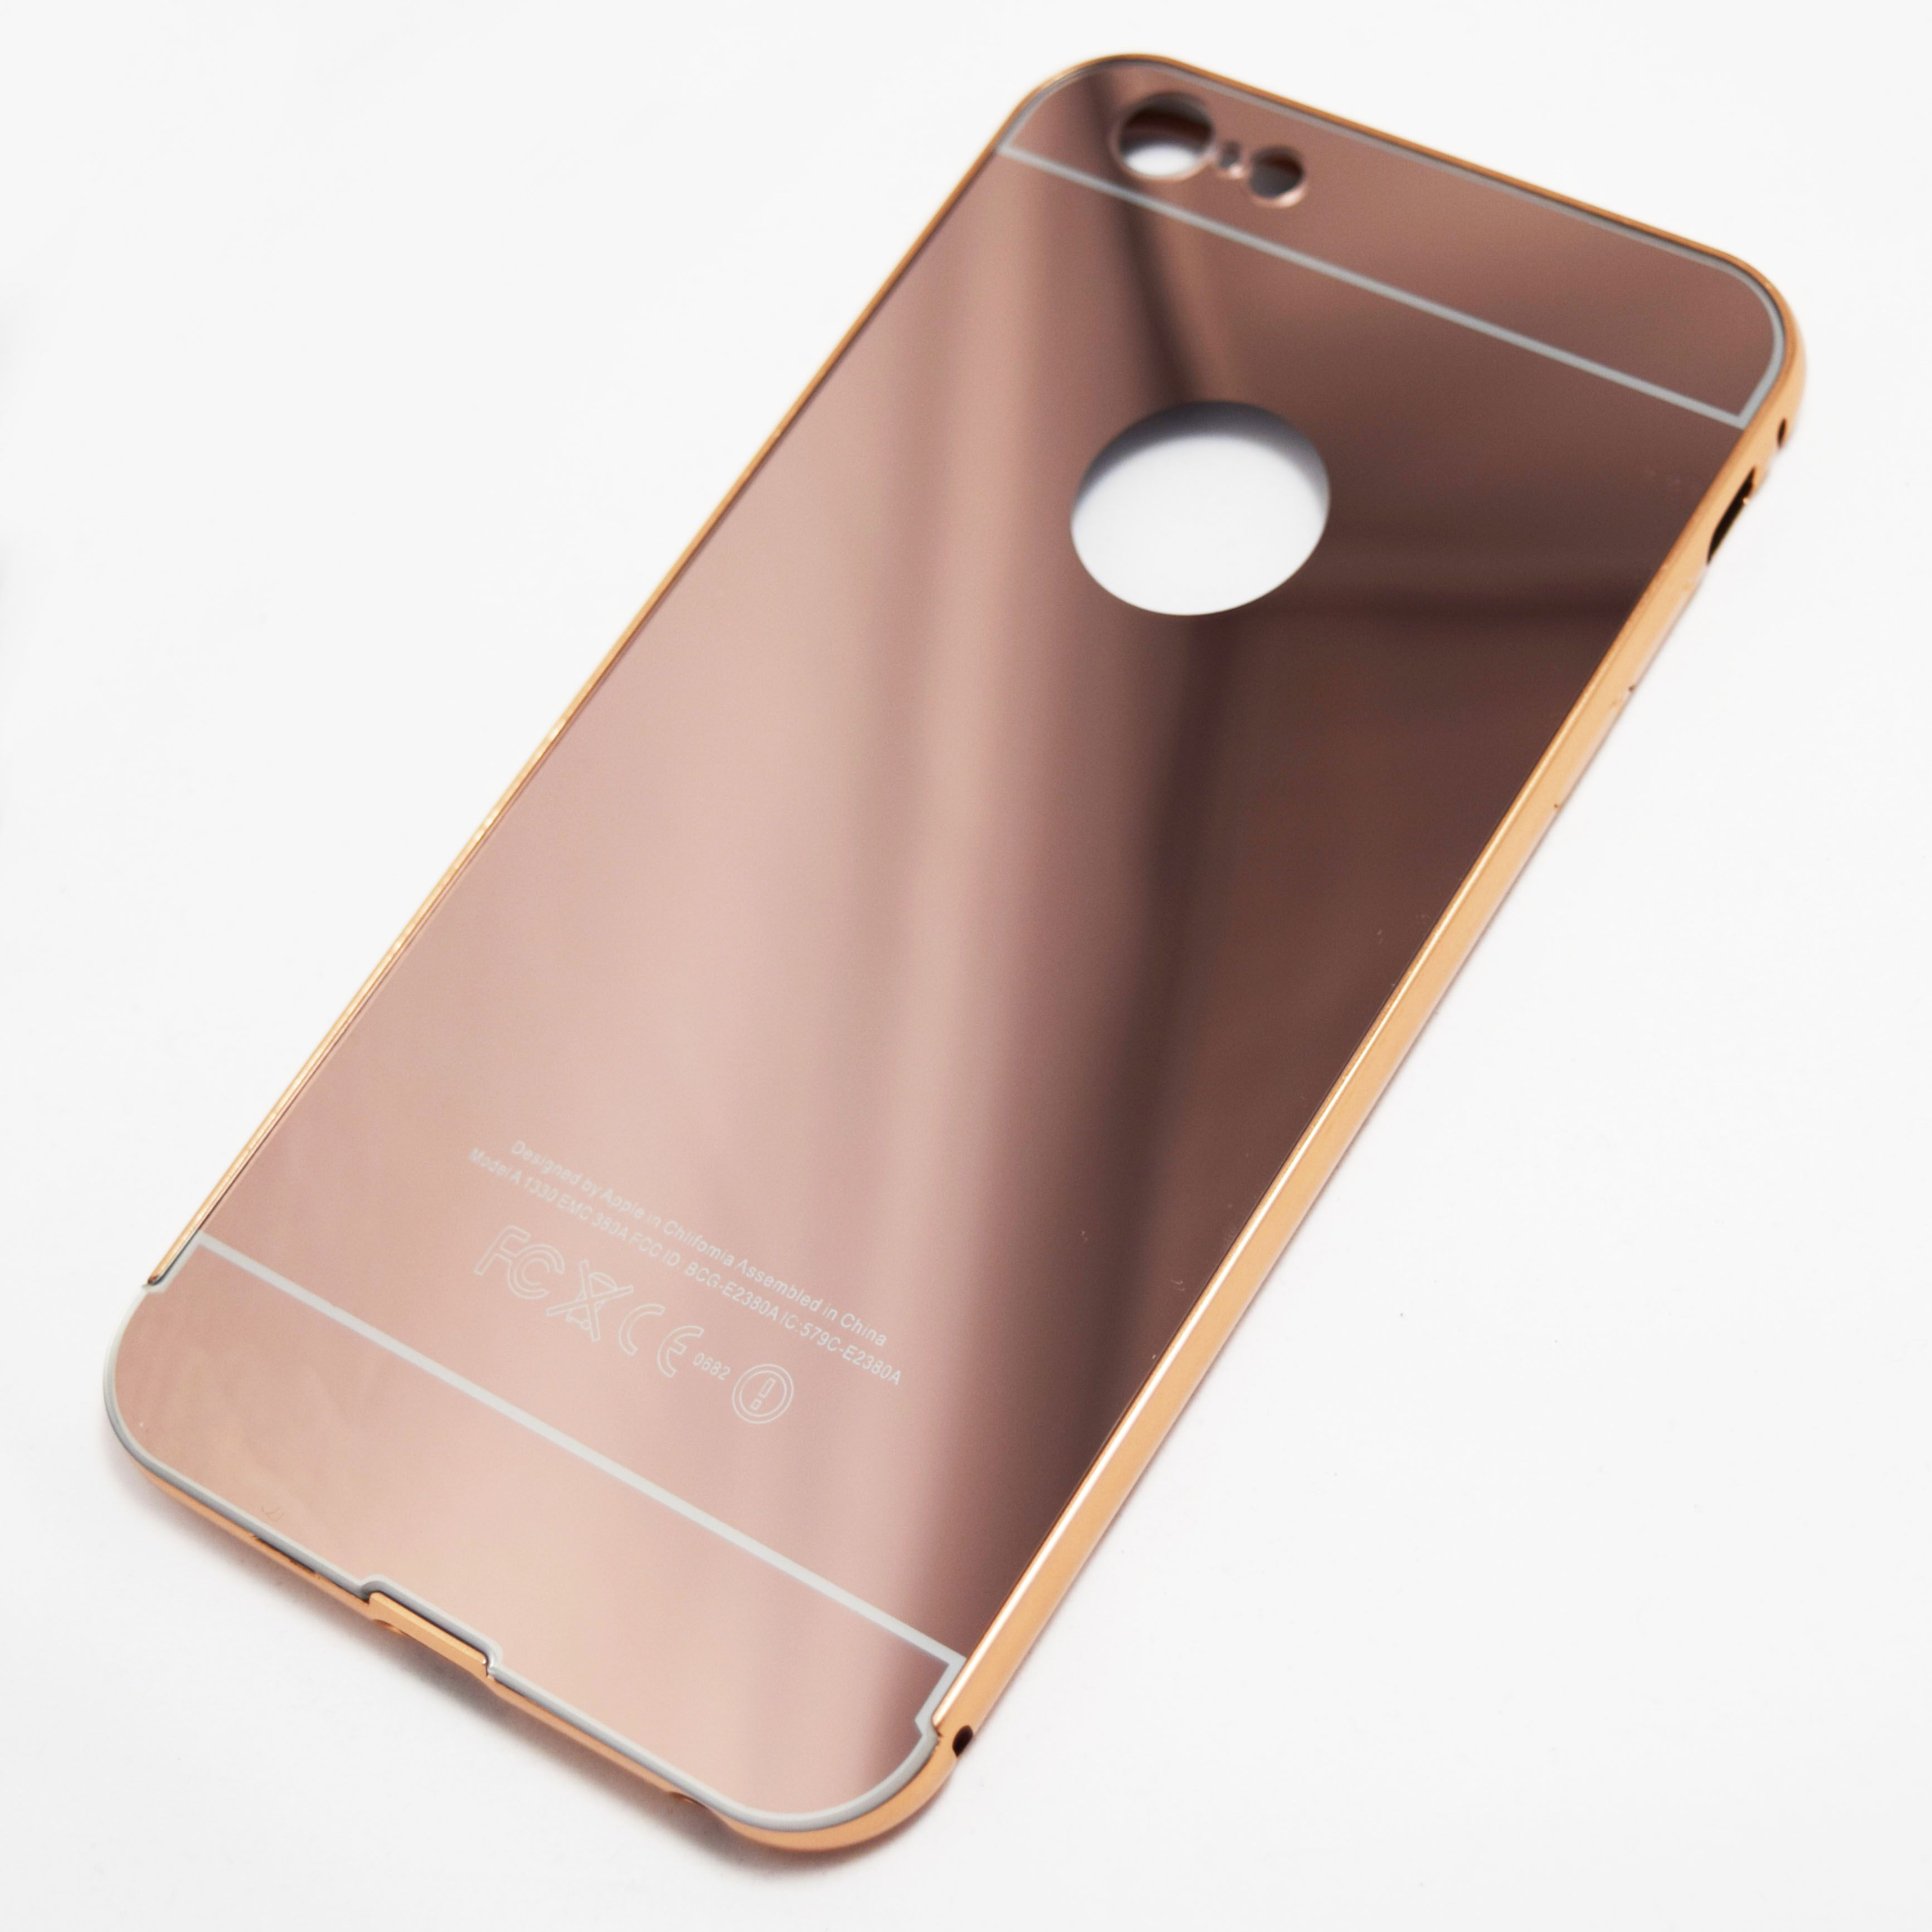 Gold Rose Gold Silver Space Grey Iphone 7 8 Mirror Cases Retailite Iphone Phone Cases Iphone Cute Phone Cases